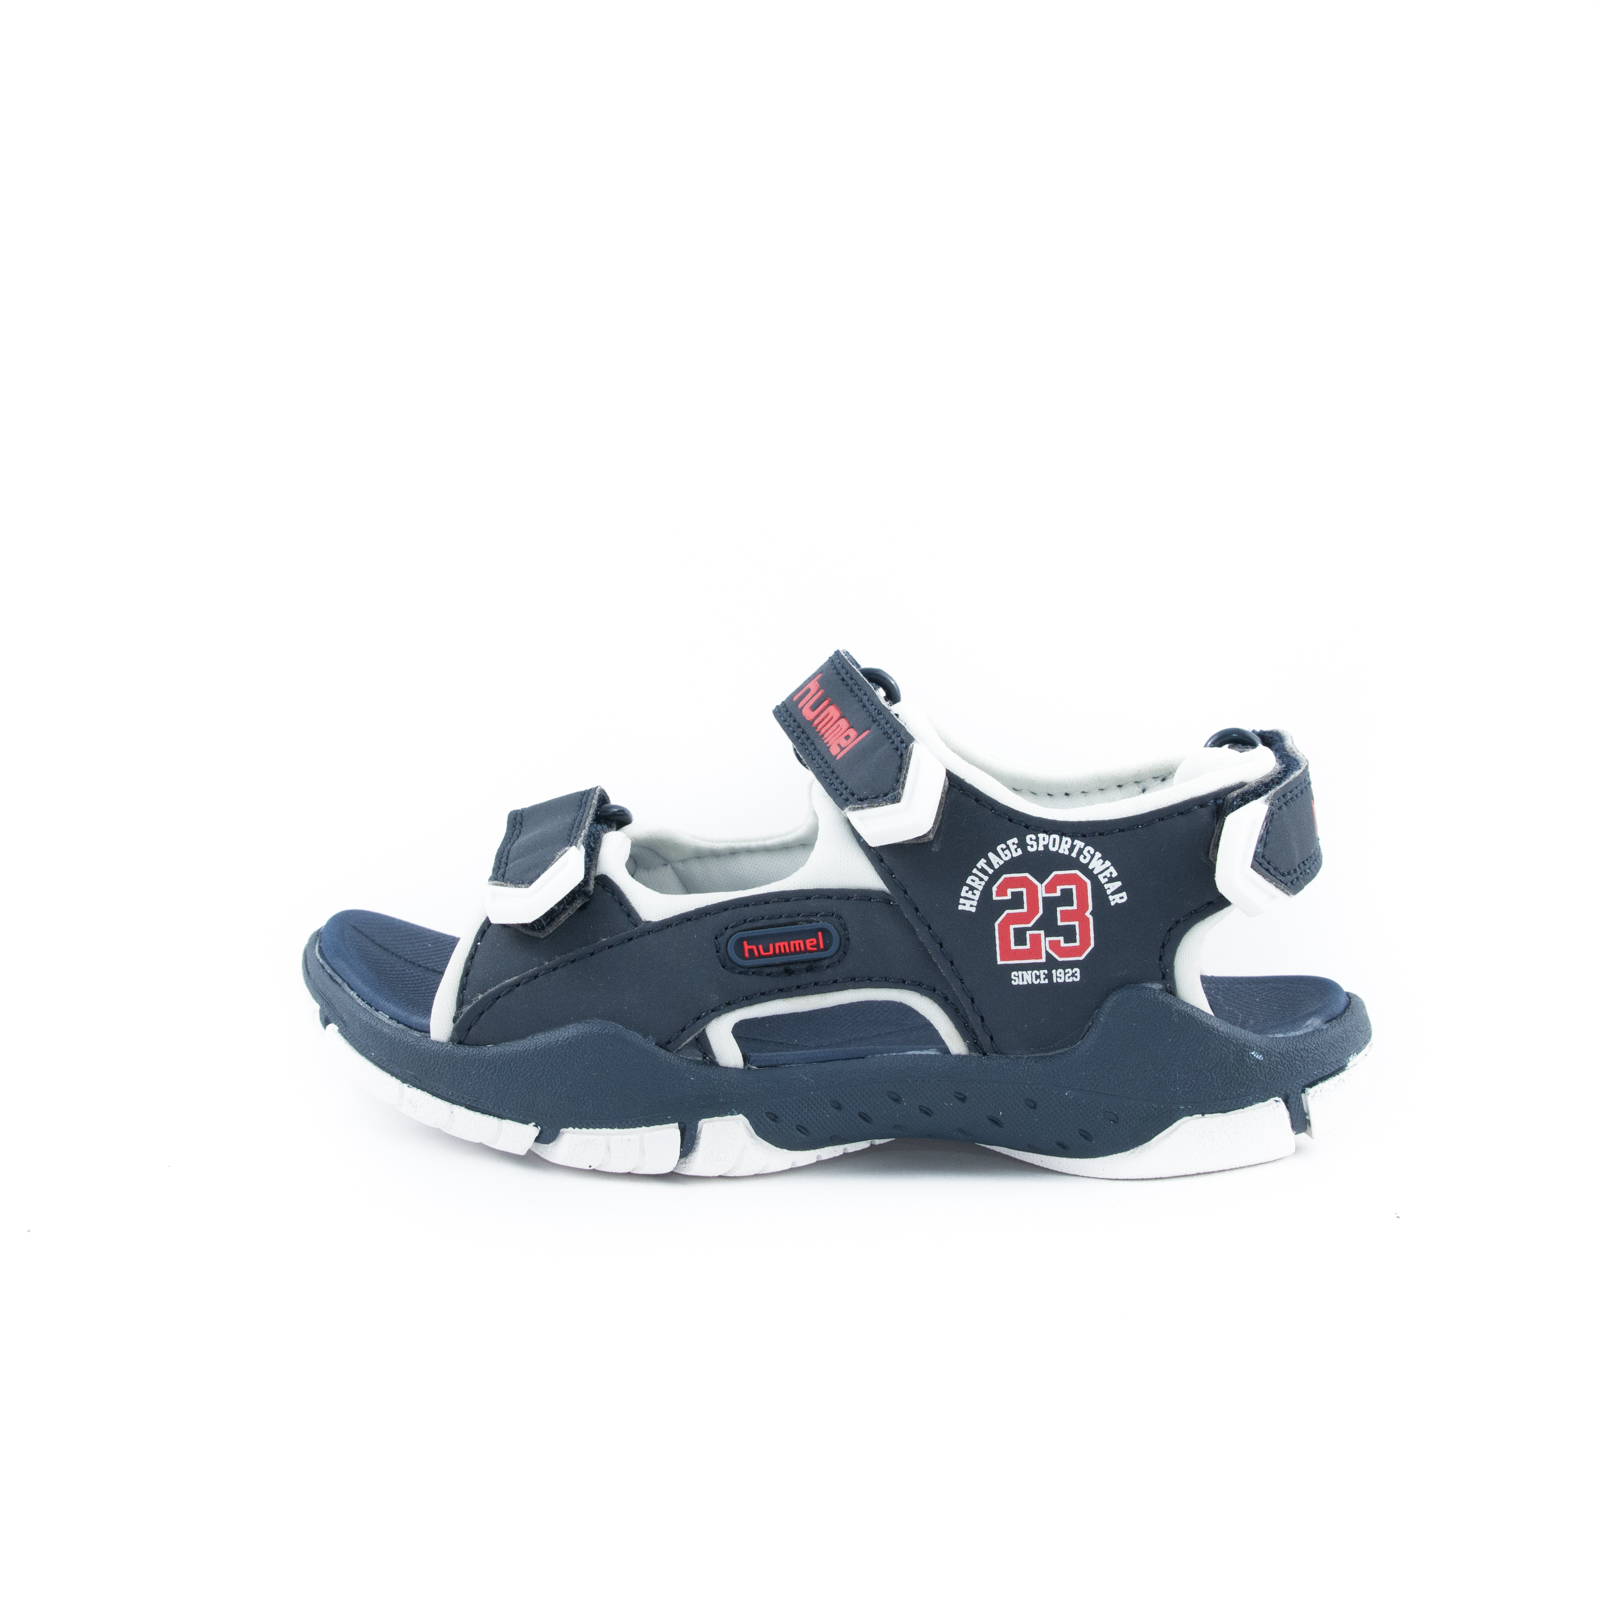 HUMMEL Boys Sandals Waterproof 203308-1009 NOW £20